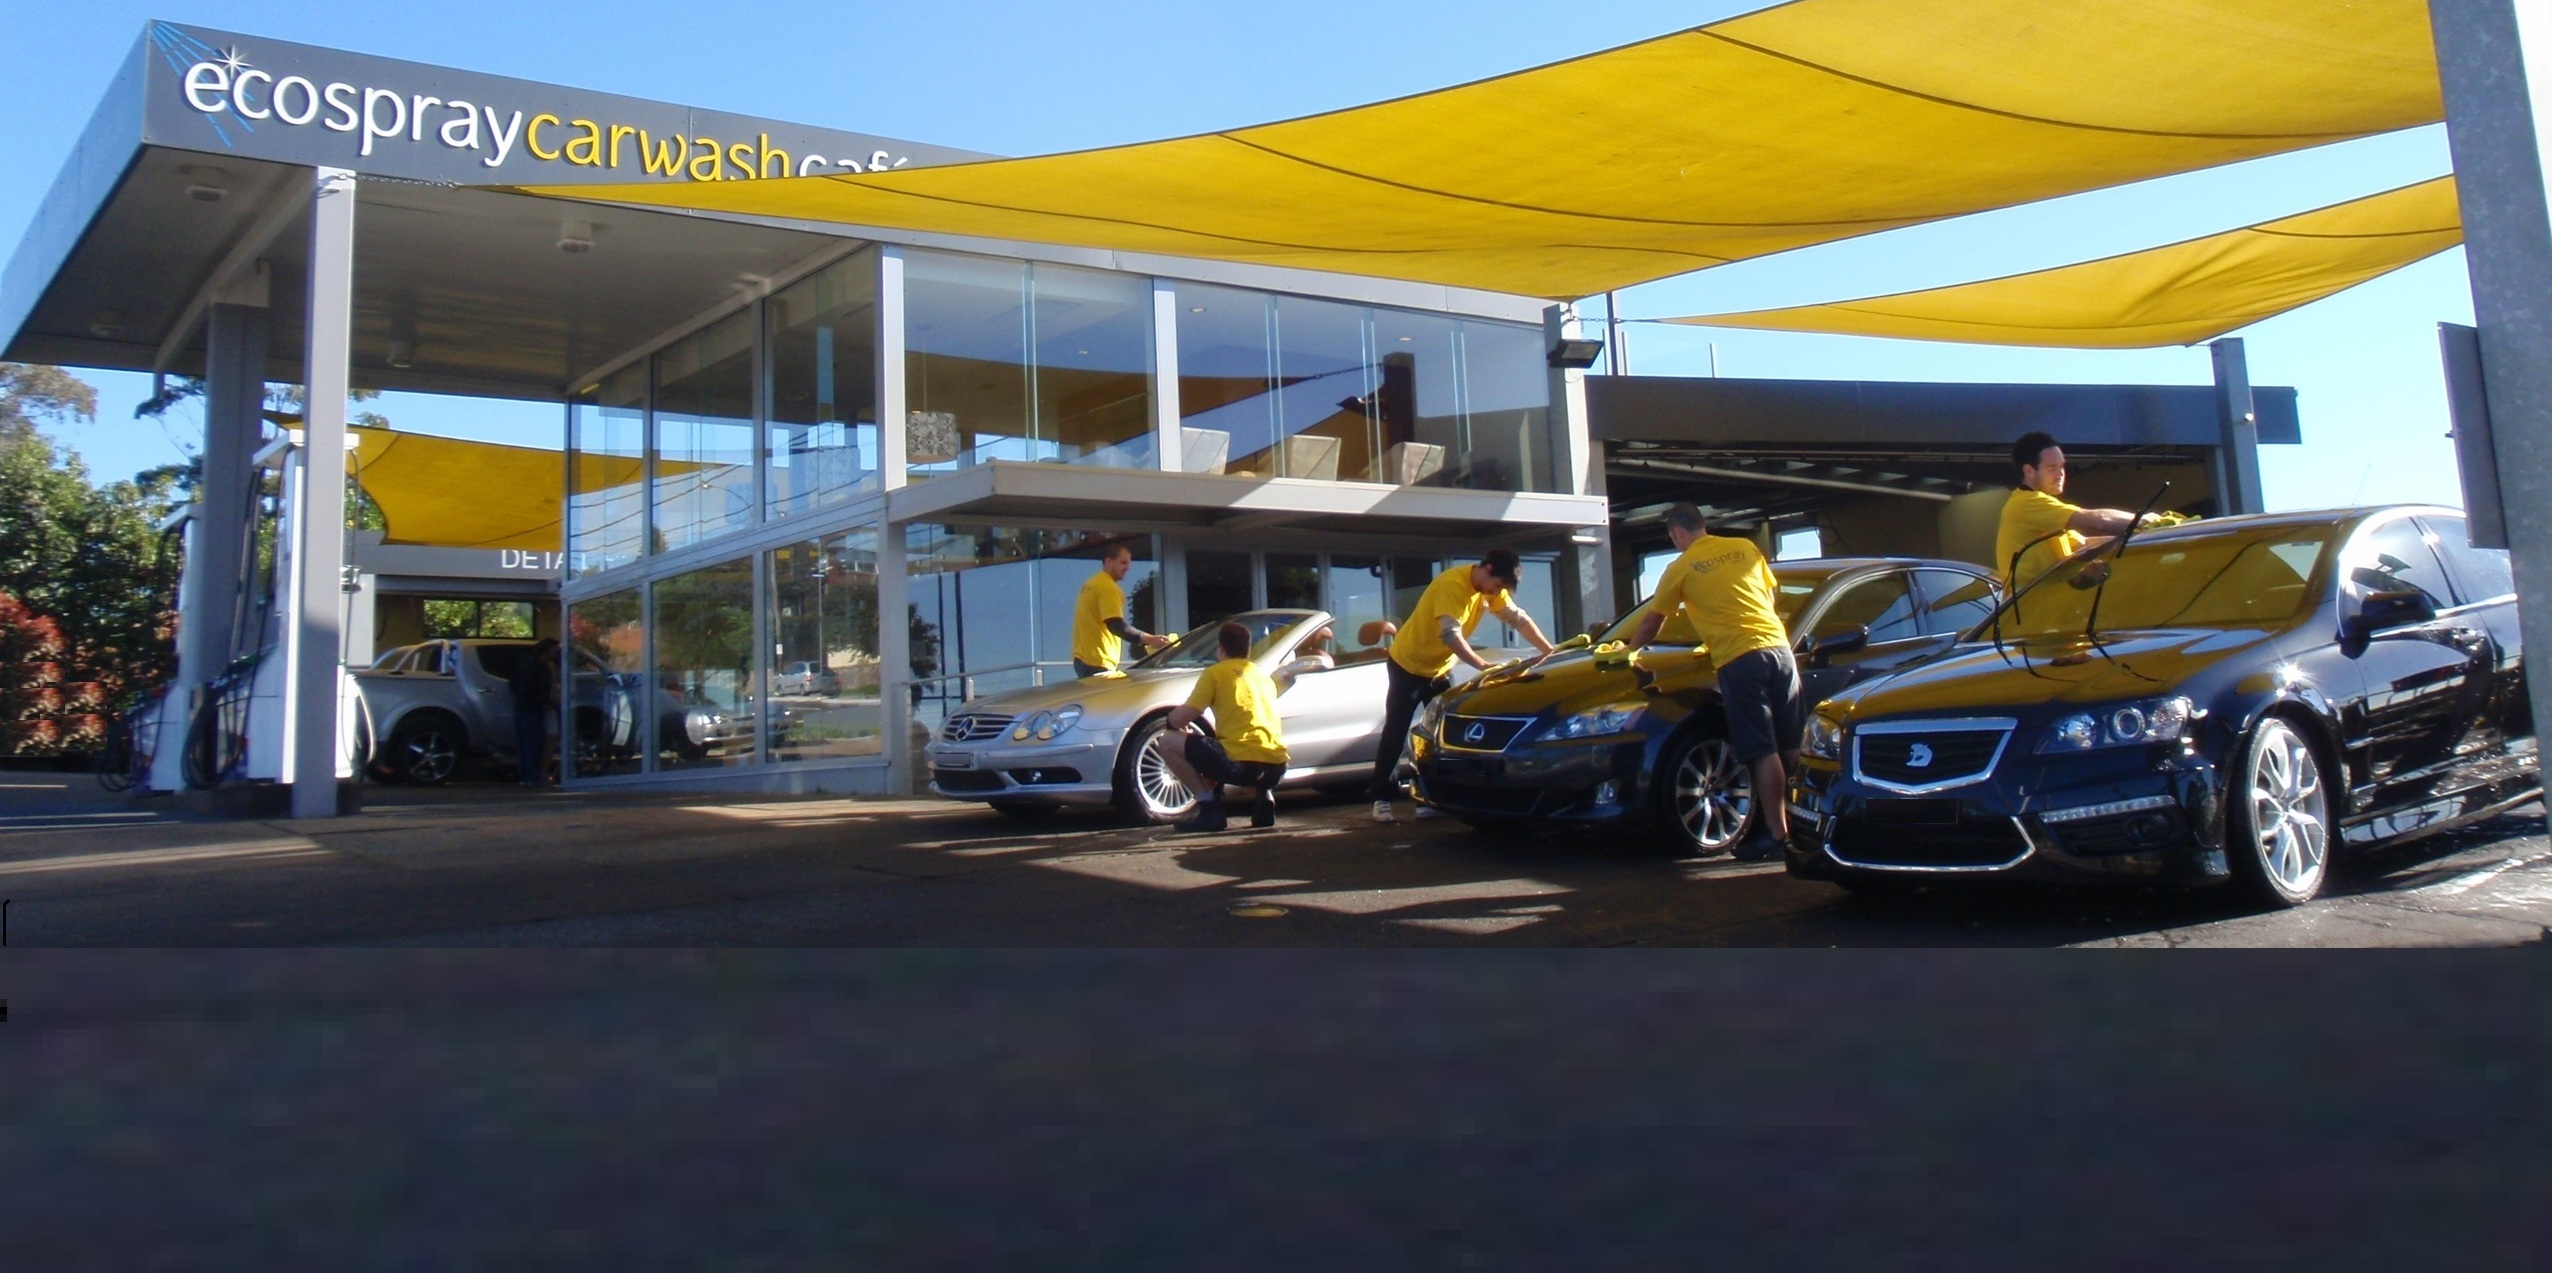 Ecospray car wash cafe sydney australia ecospray carwash cafe solutioingenieria Choice Image